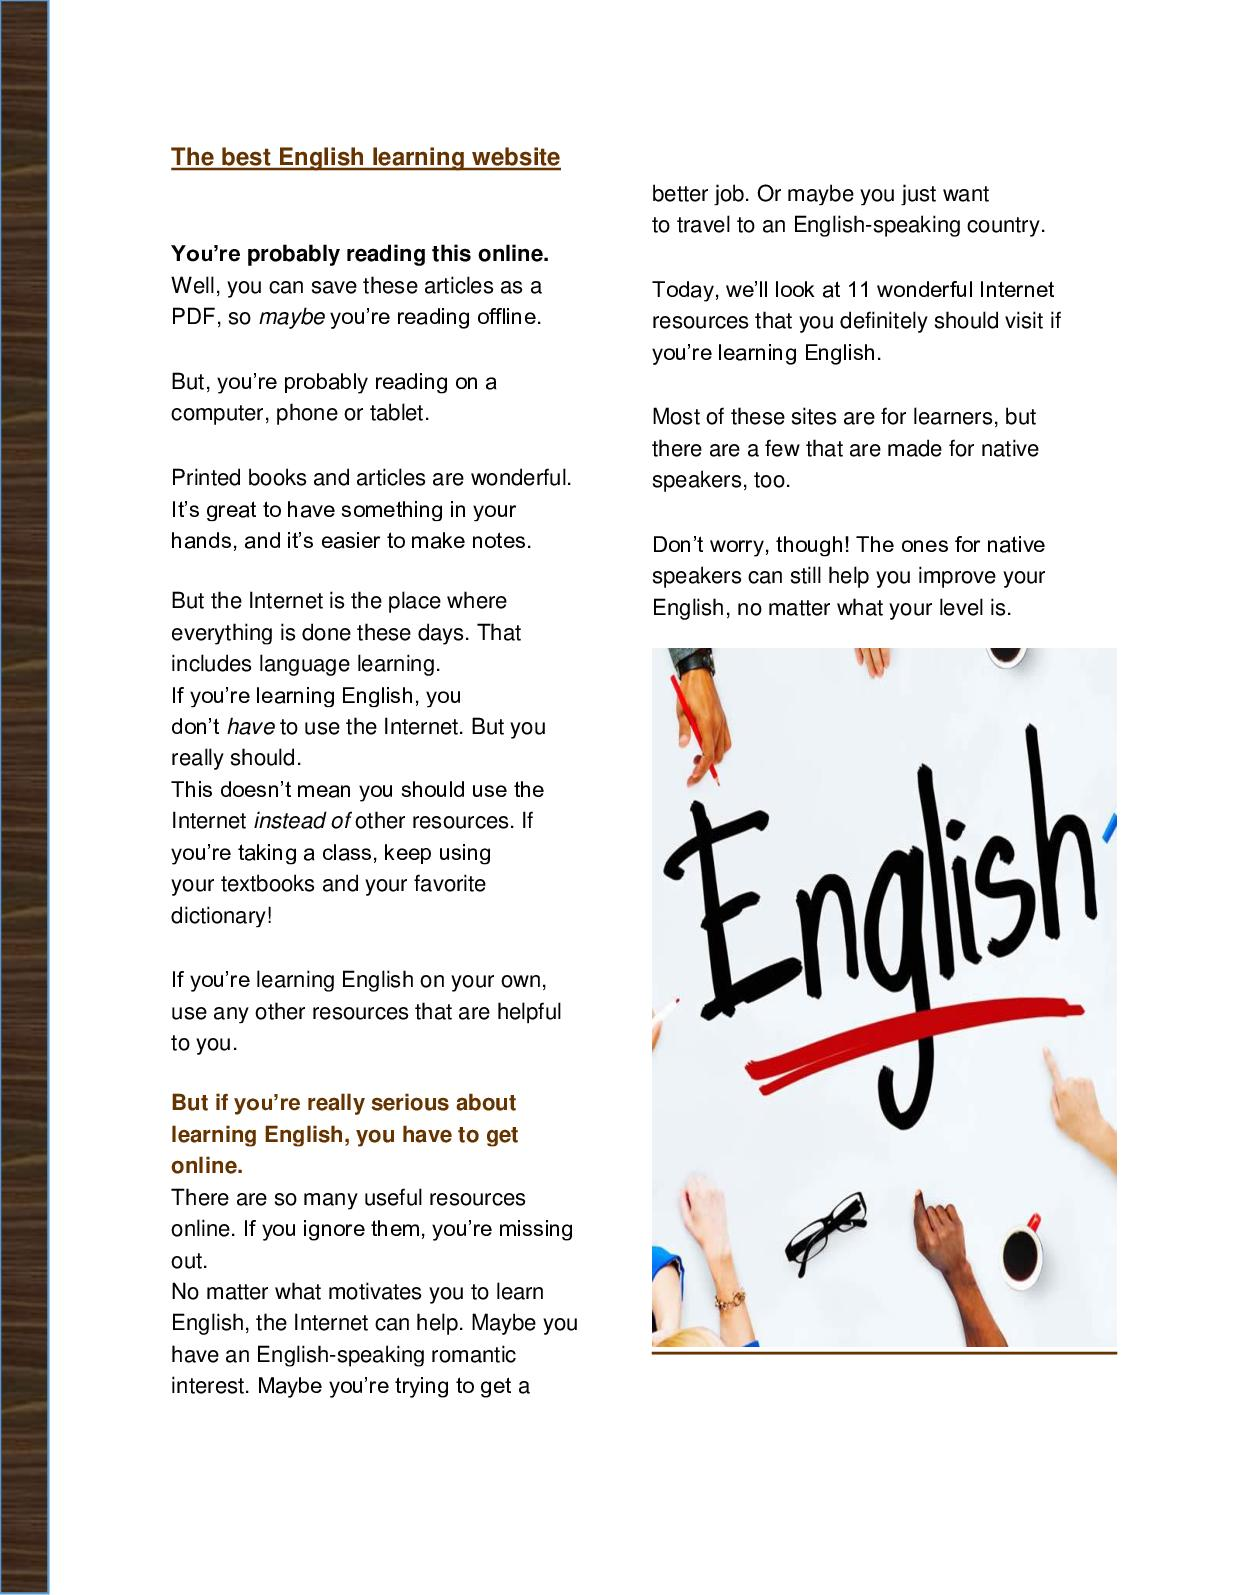 Calaméo - The Best English Learning Website